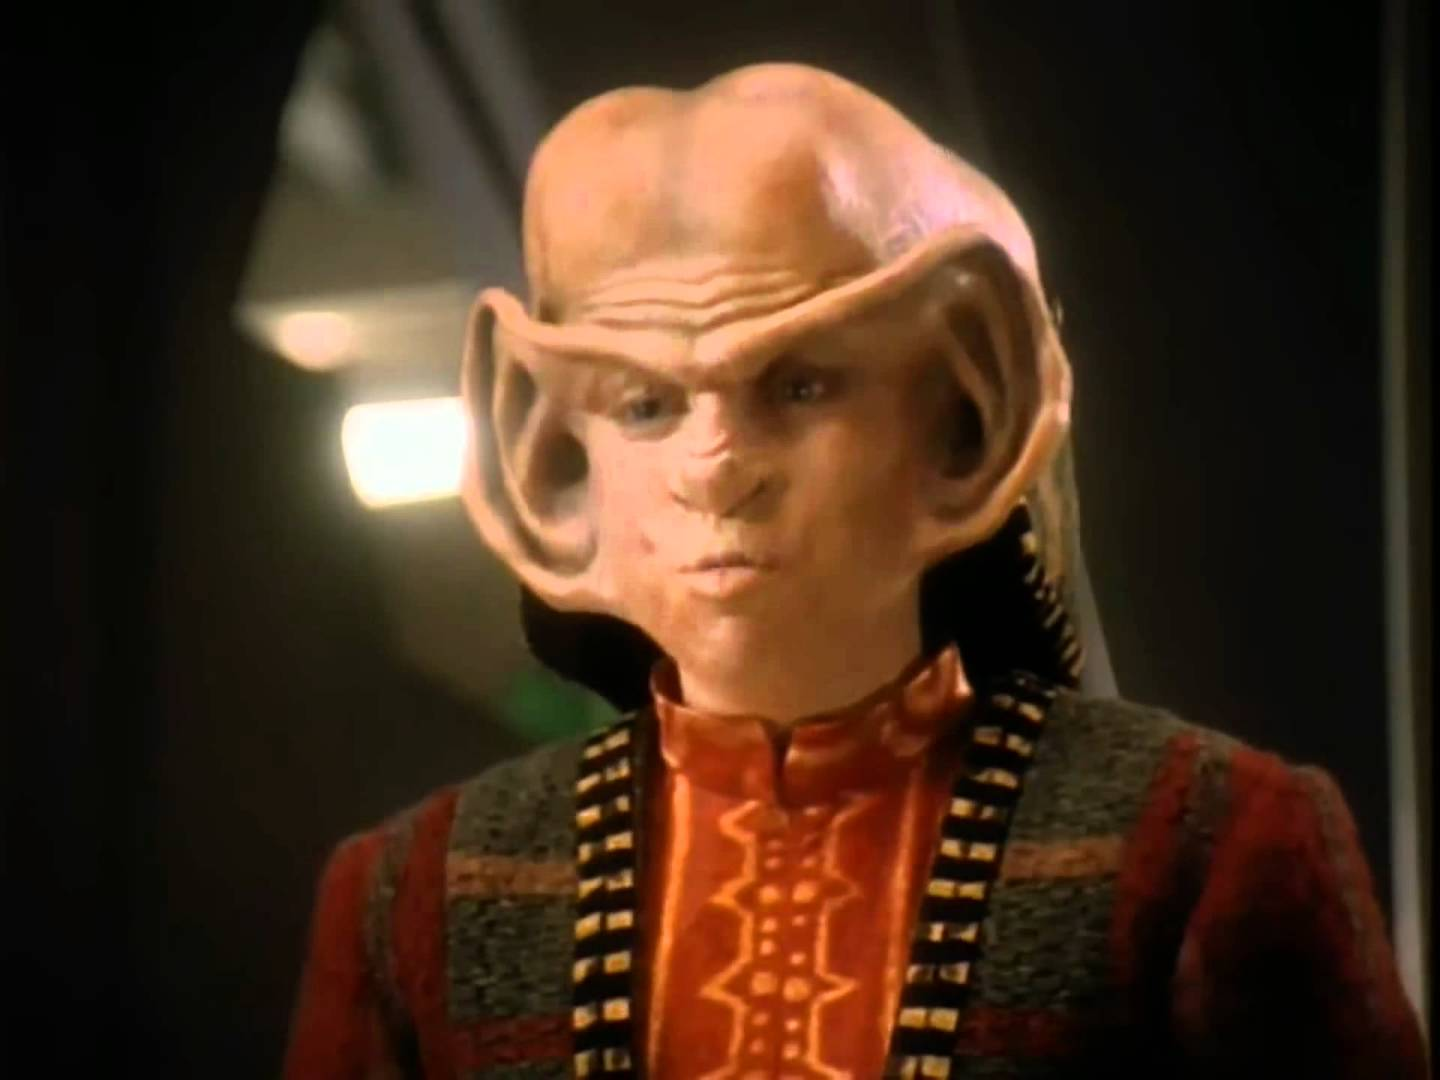 Best 60 Ferengi Wallpaper on HipWallpaper Ferengi Wallpaper 1440x1080